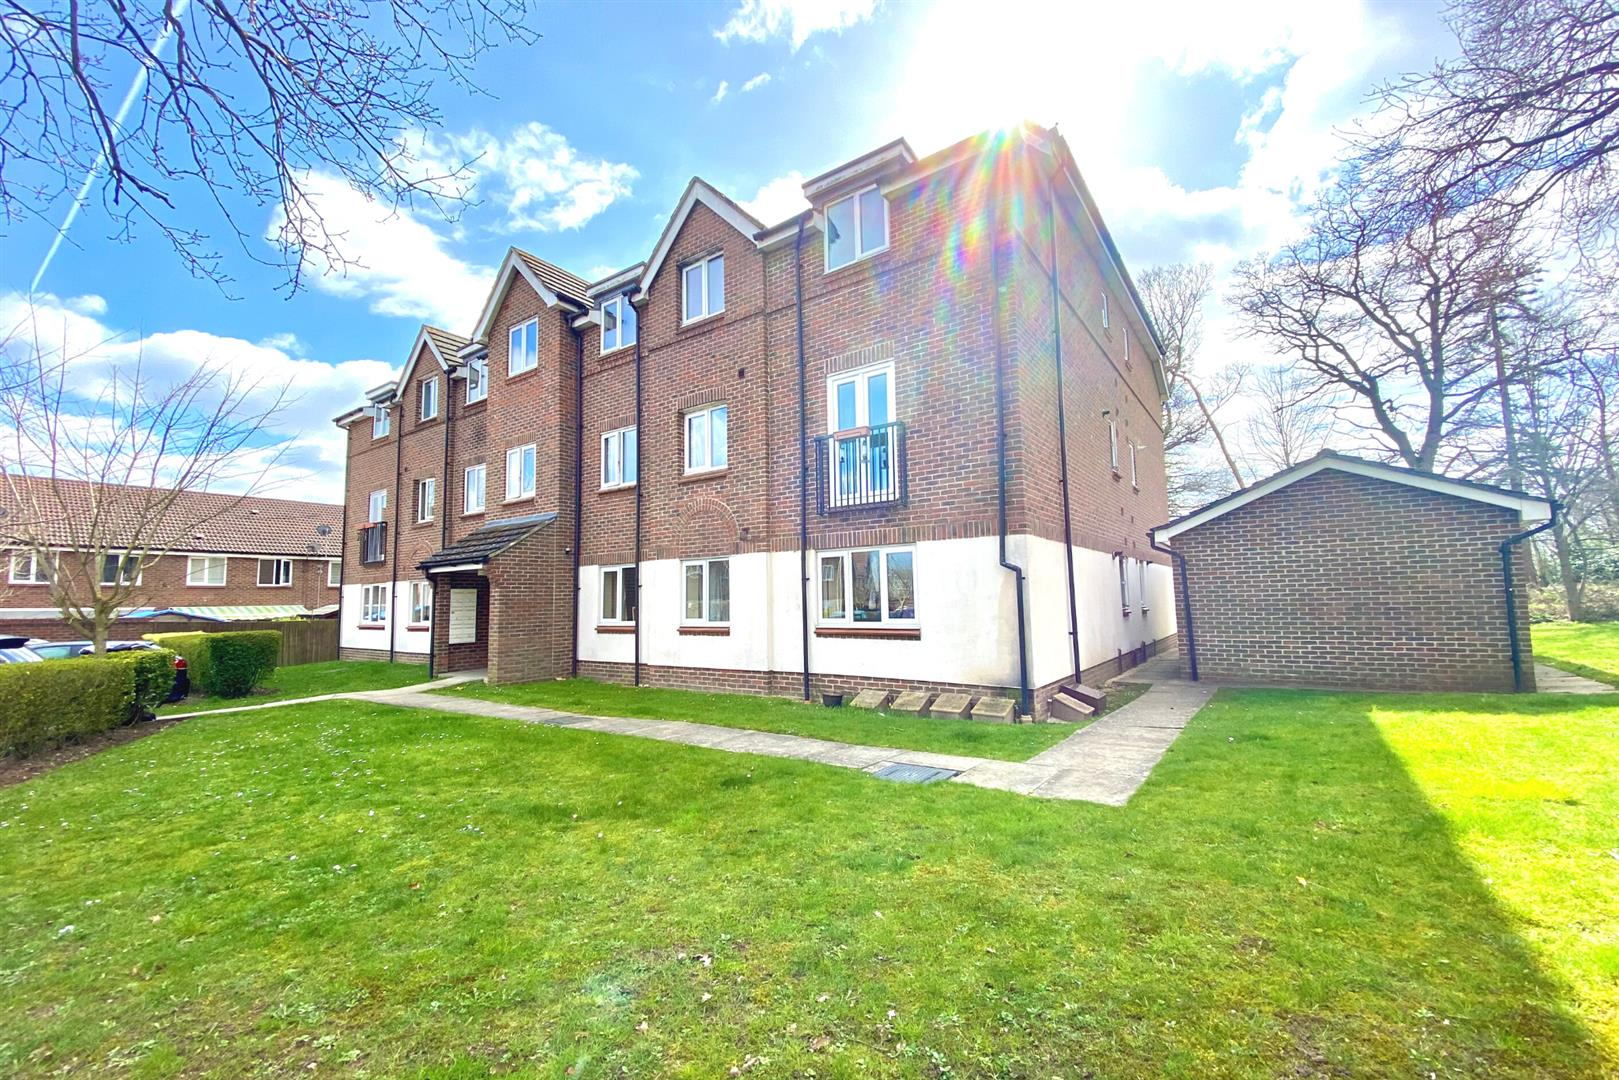 2 bed flat for sale in Spencers Wood, RG7